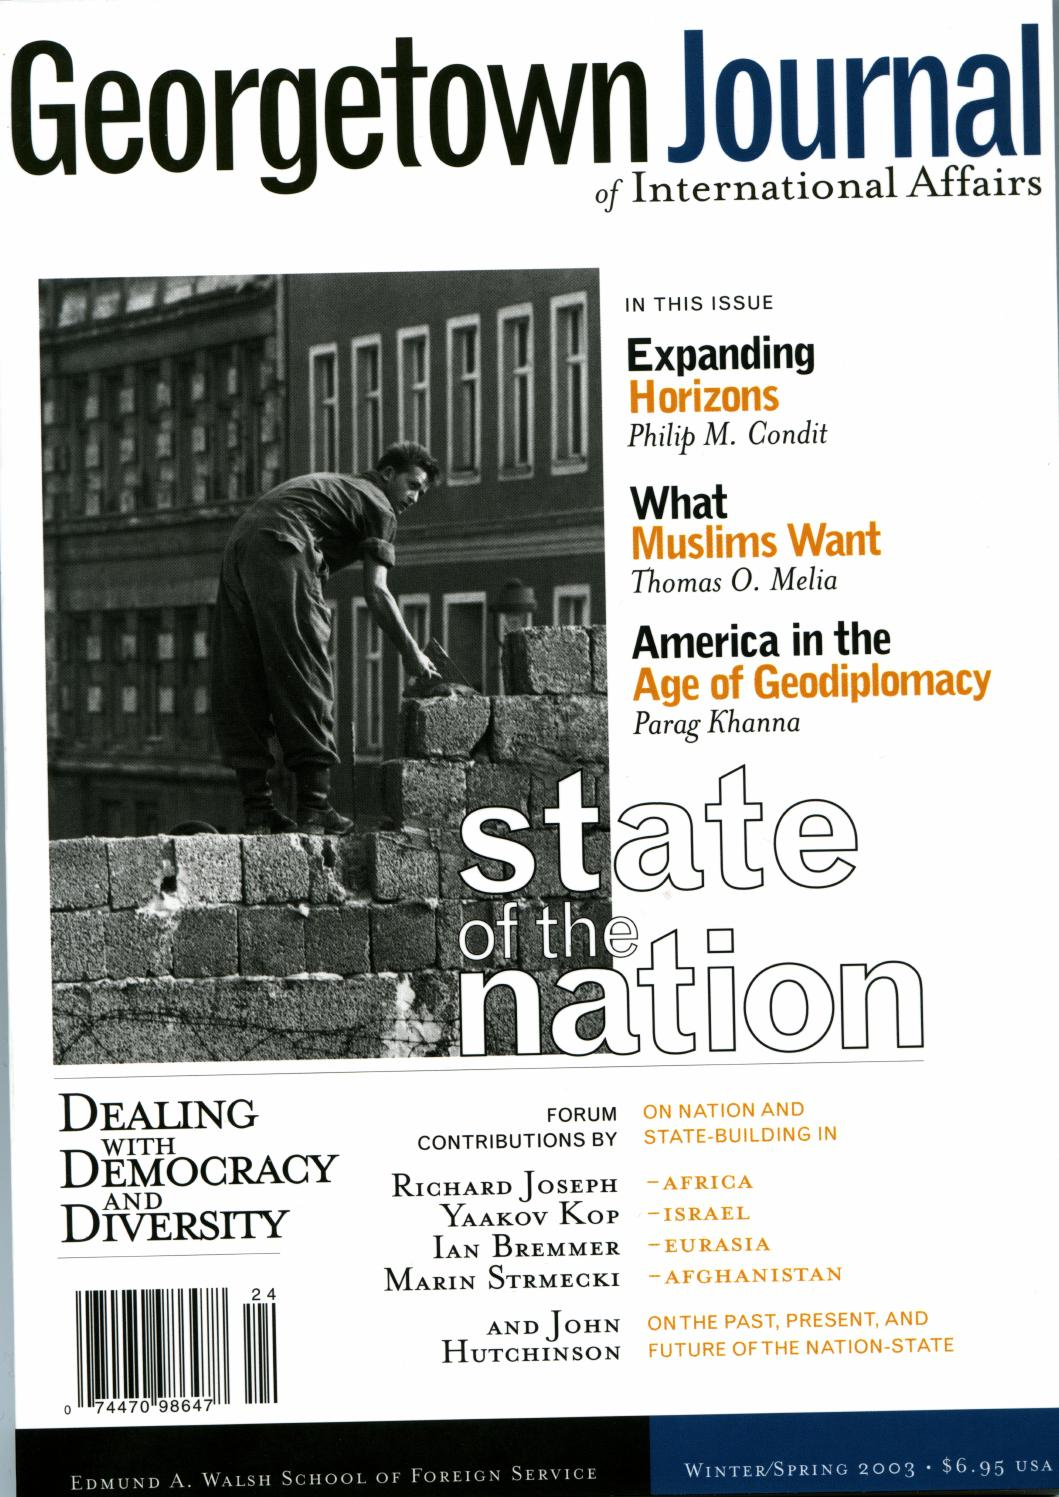 GJIA - 4.1 State of the Nation by GJIA (Georgetown Journal of ...